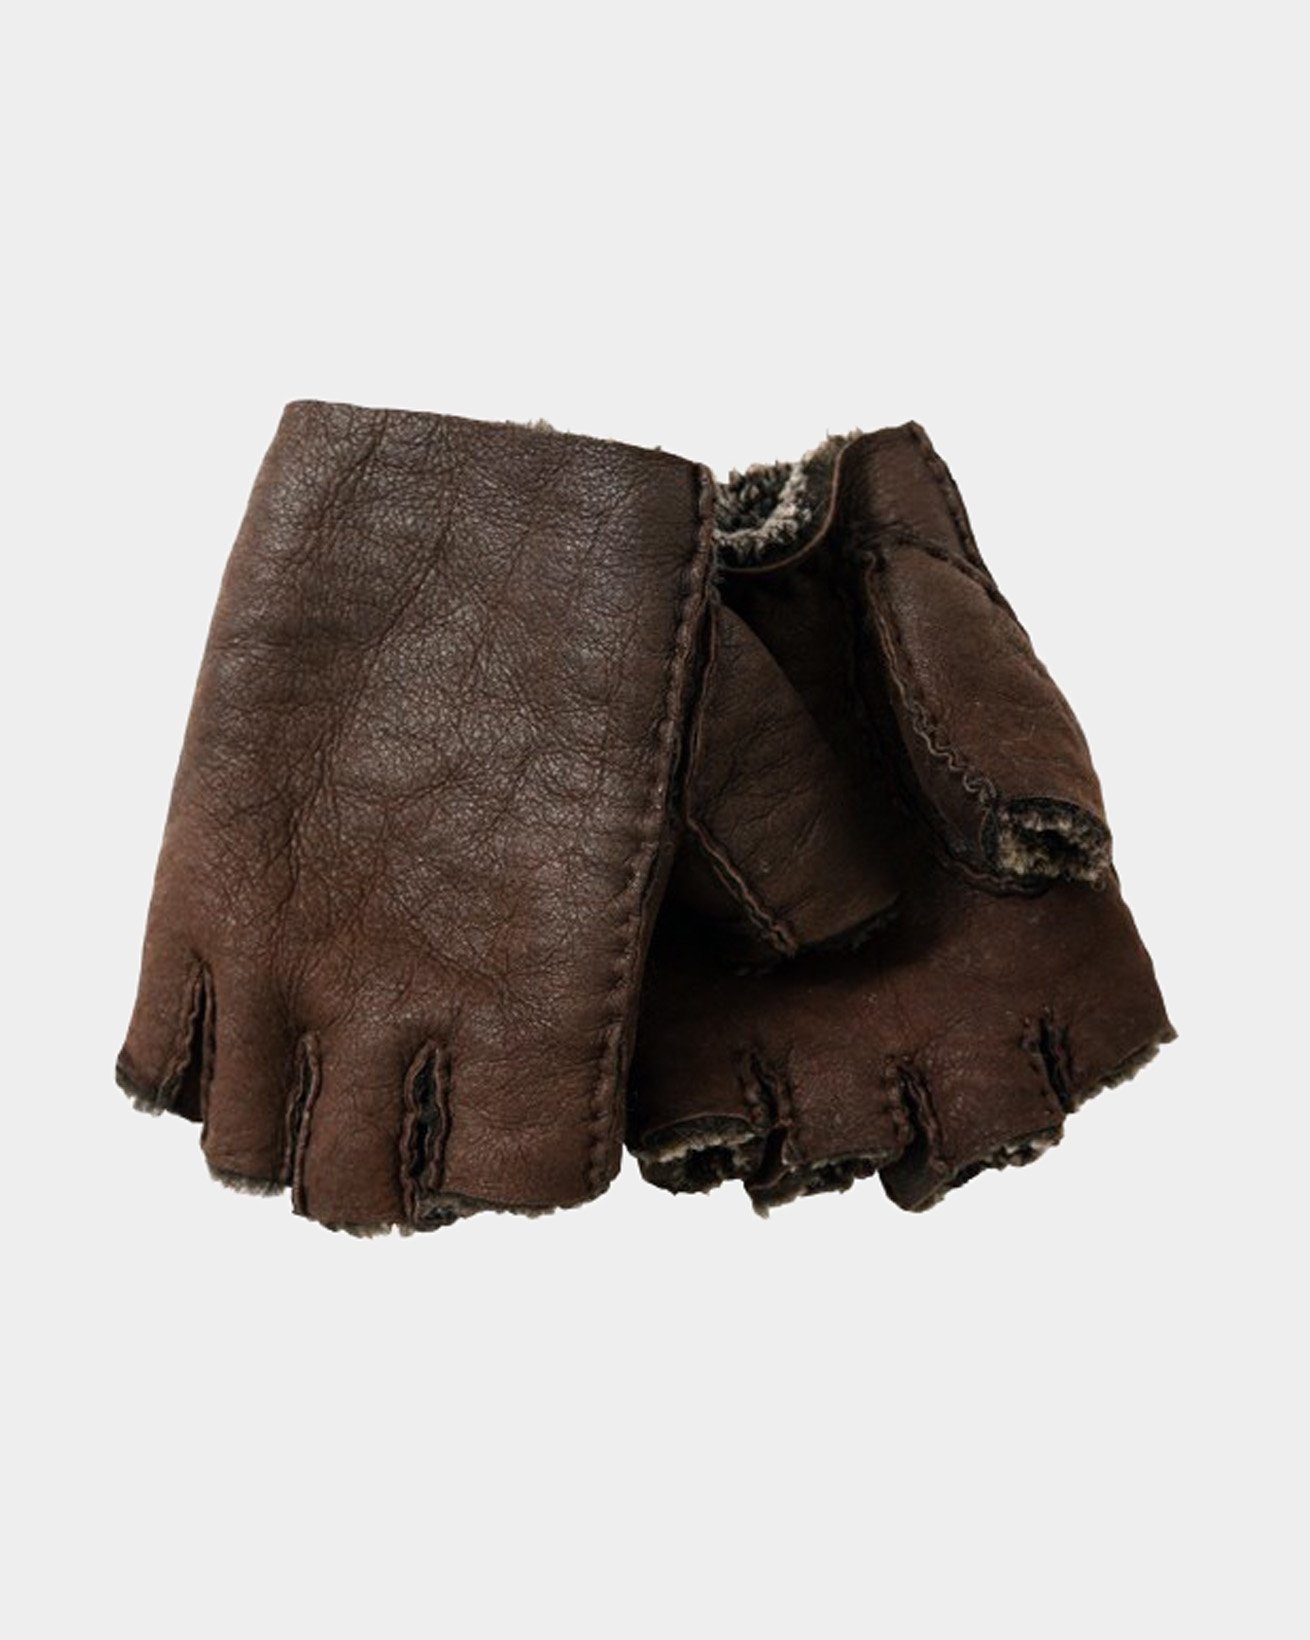 5899-mens-fingerless-gloves-cutout-1.jpg